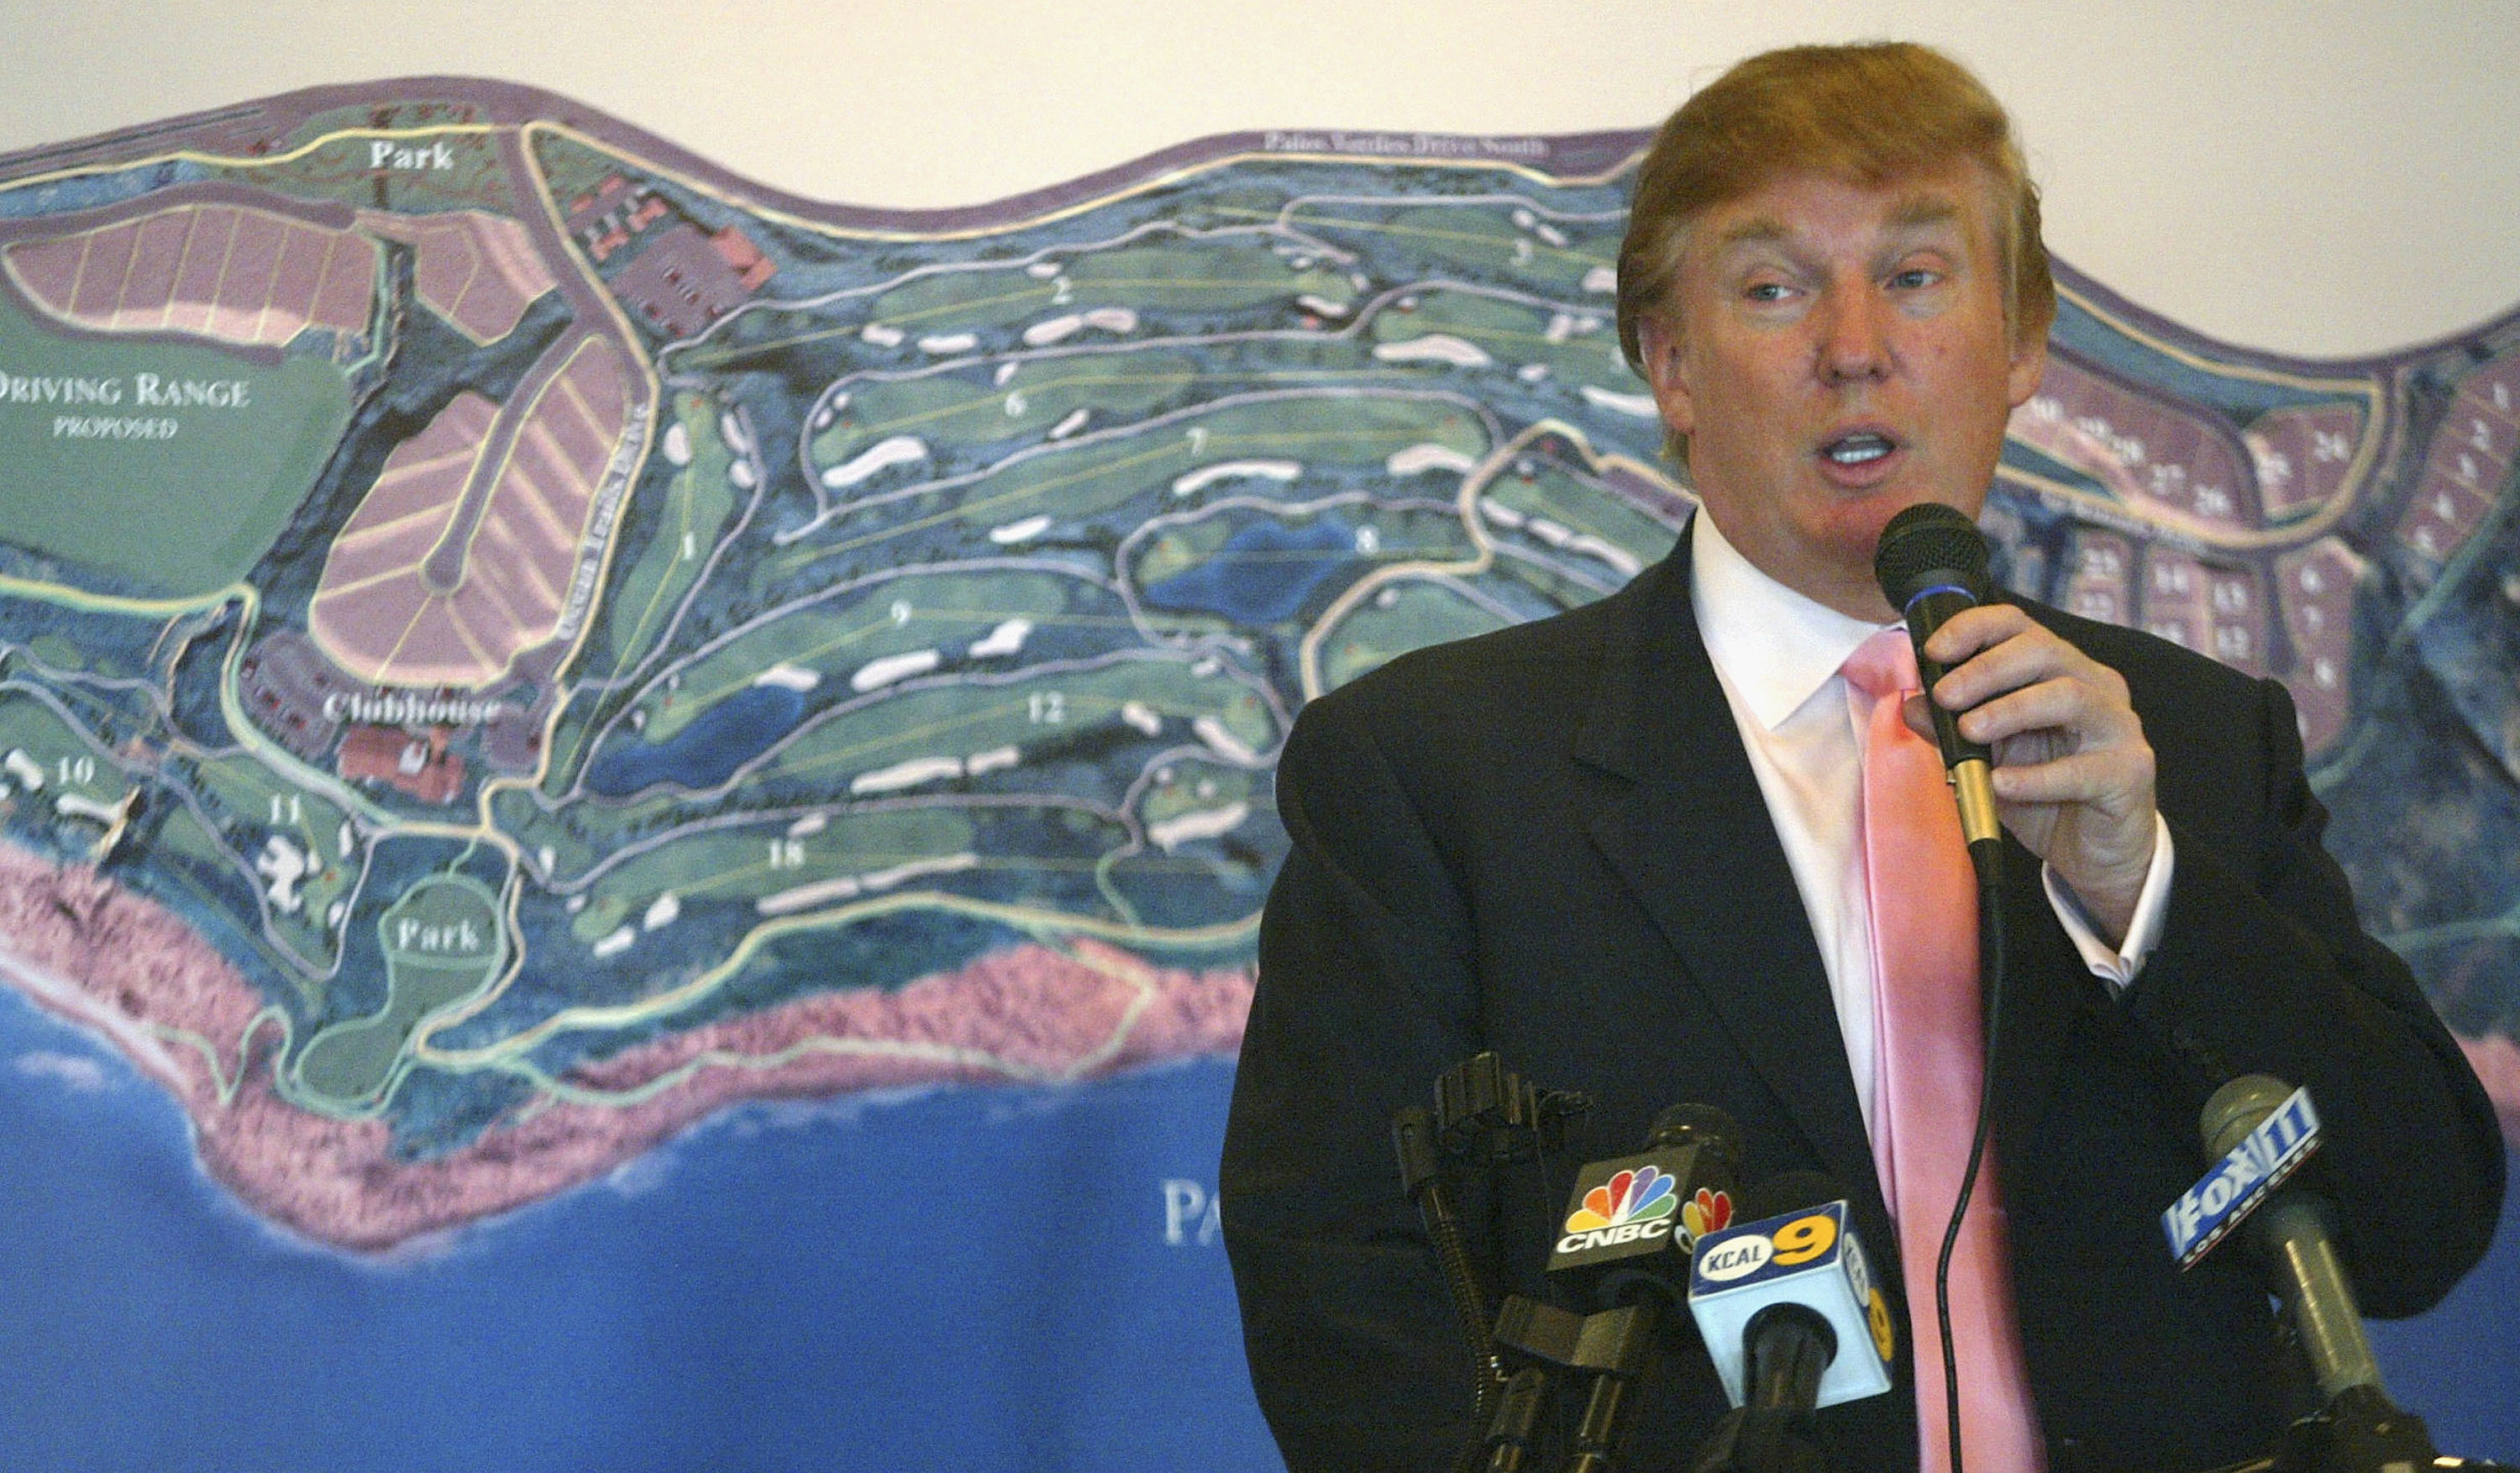 Insults, Lawsuits And Broken Rules: How Trump Built A California Golf Course